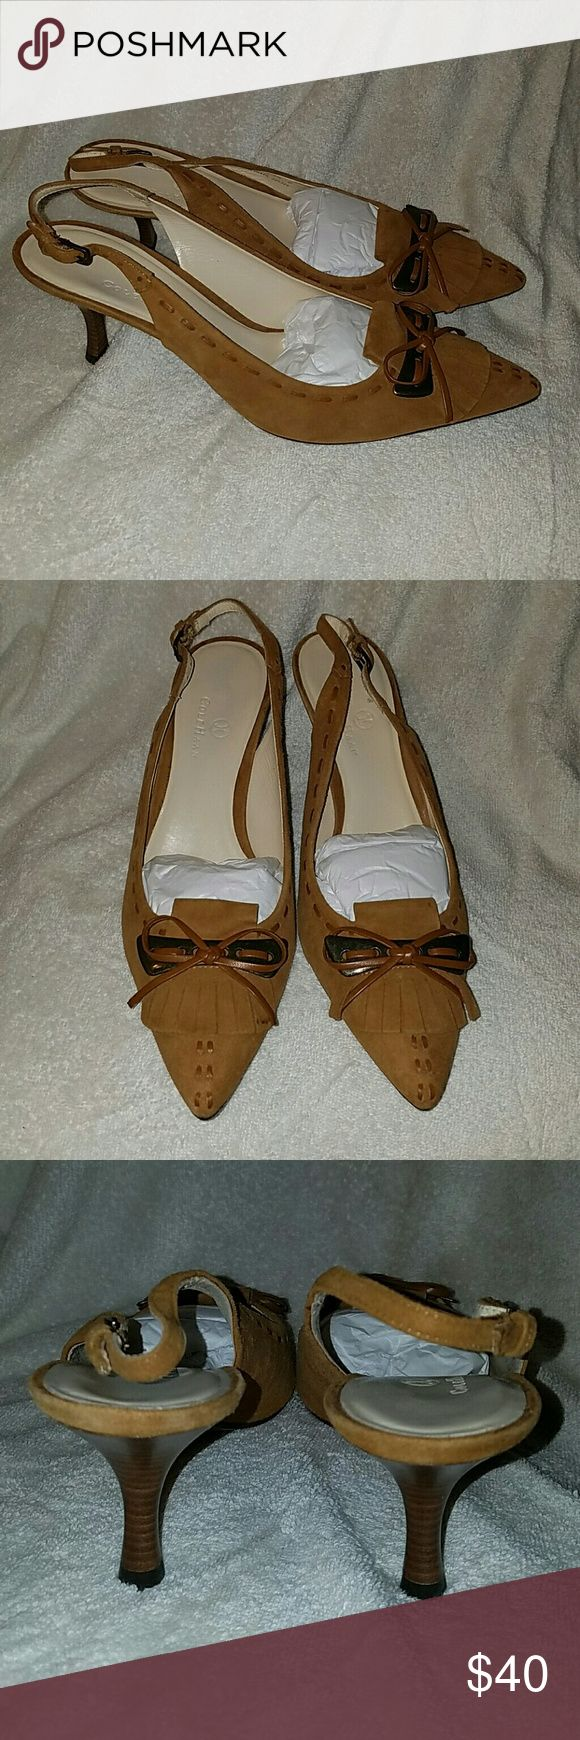 """Cole Haan tan suede sling back heels size 9.5 This is a beautiful pair of Cole Haan tan suede slingback heels.  Stored in plastic with original tissue in toe. They have a great wooden High kitten style heel that measures about 2 3/4"""".  These shoes were never worn  The toes are pointed and the top of the shoe is adorned with fringe and a leather bow.  There is a leather stitching around the shoe and down the shoe. Very well-made. Made in Brazil. Size 9.5 Please contact me for any further…"""